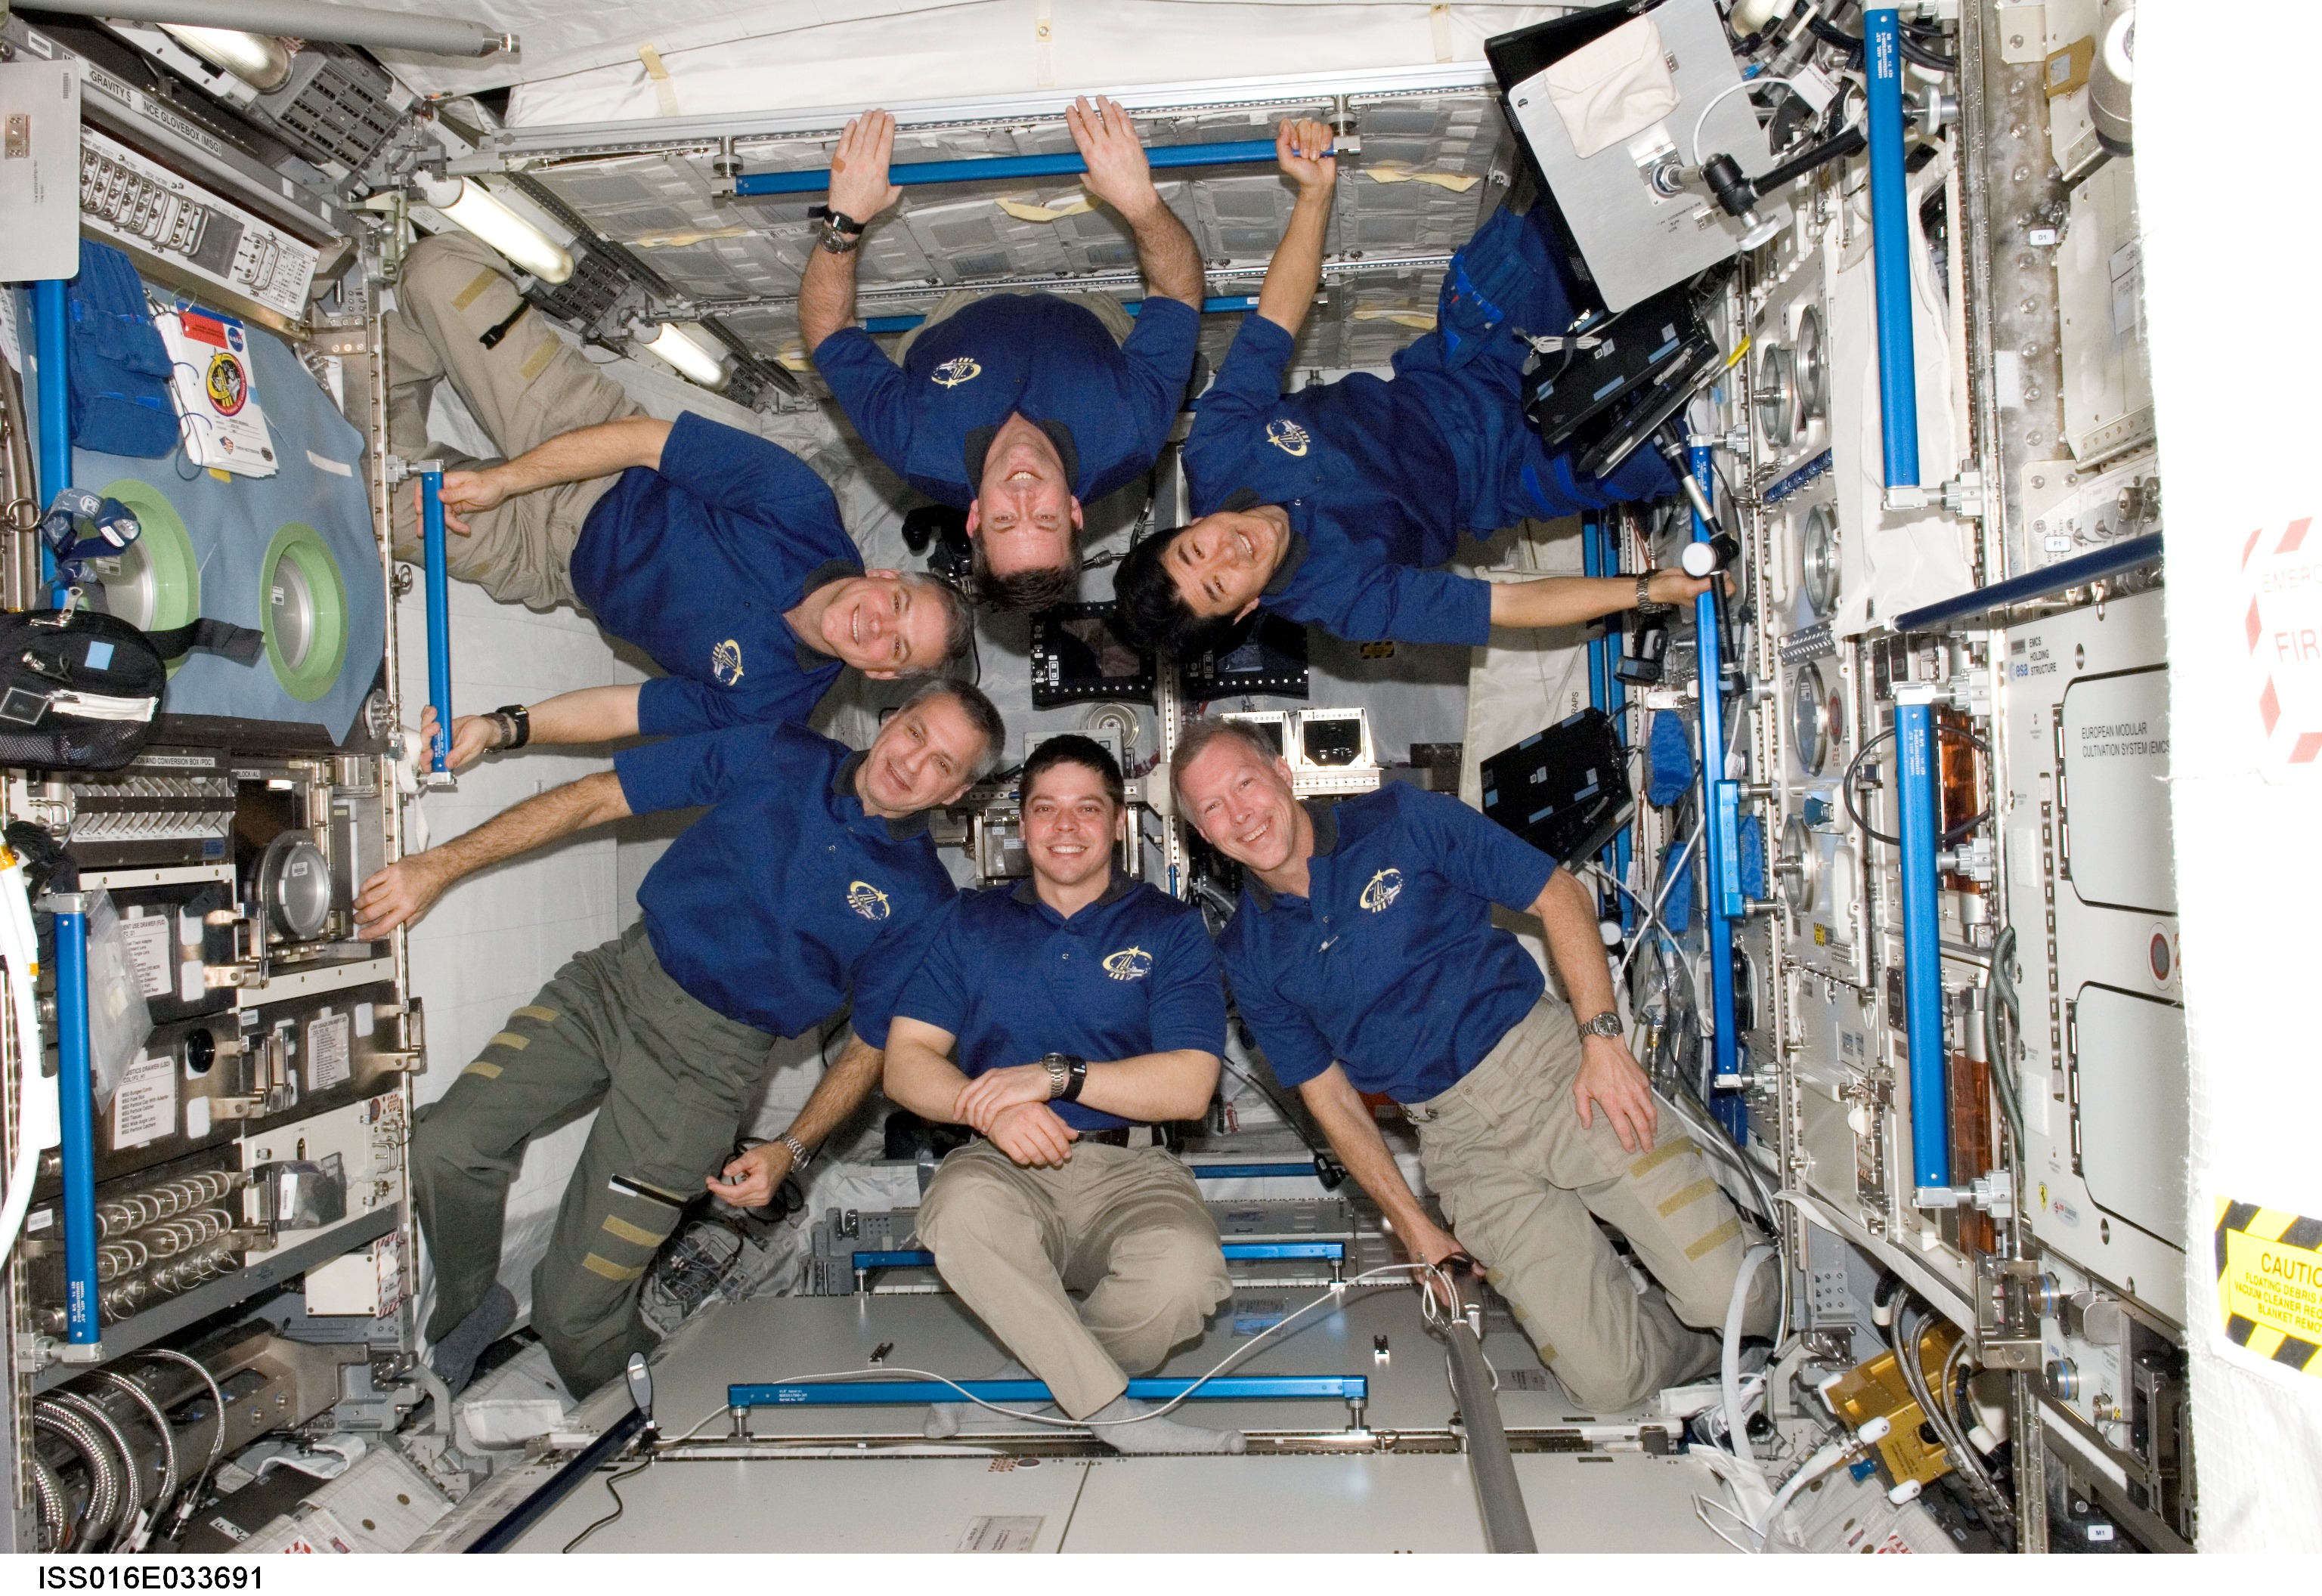 Japanese astronaut to command space station in March